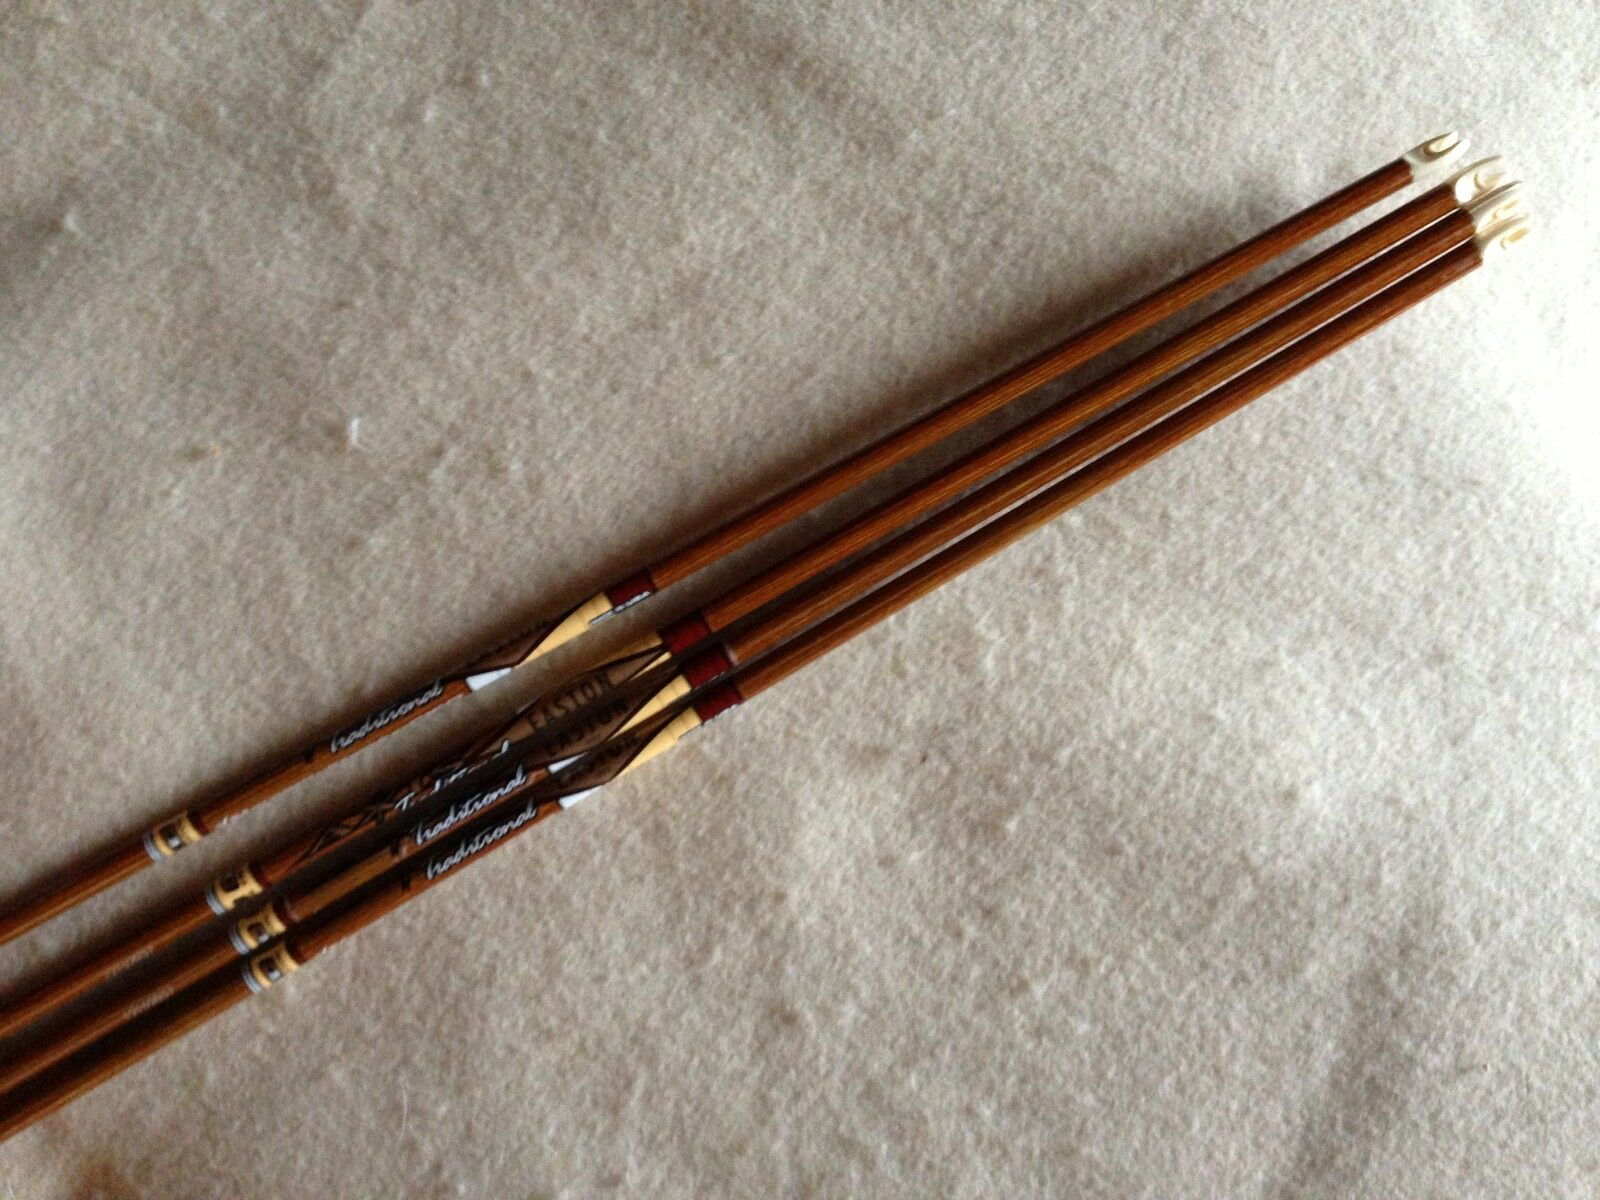 Easton Axis Traditional Arrow Shafts 500 MFX shafts With Aluminum Inserts